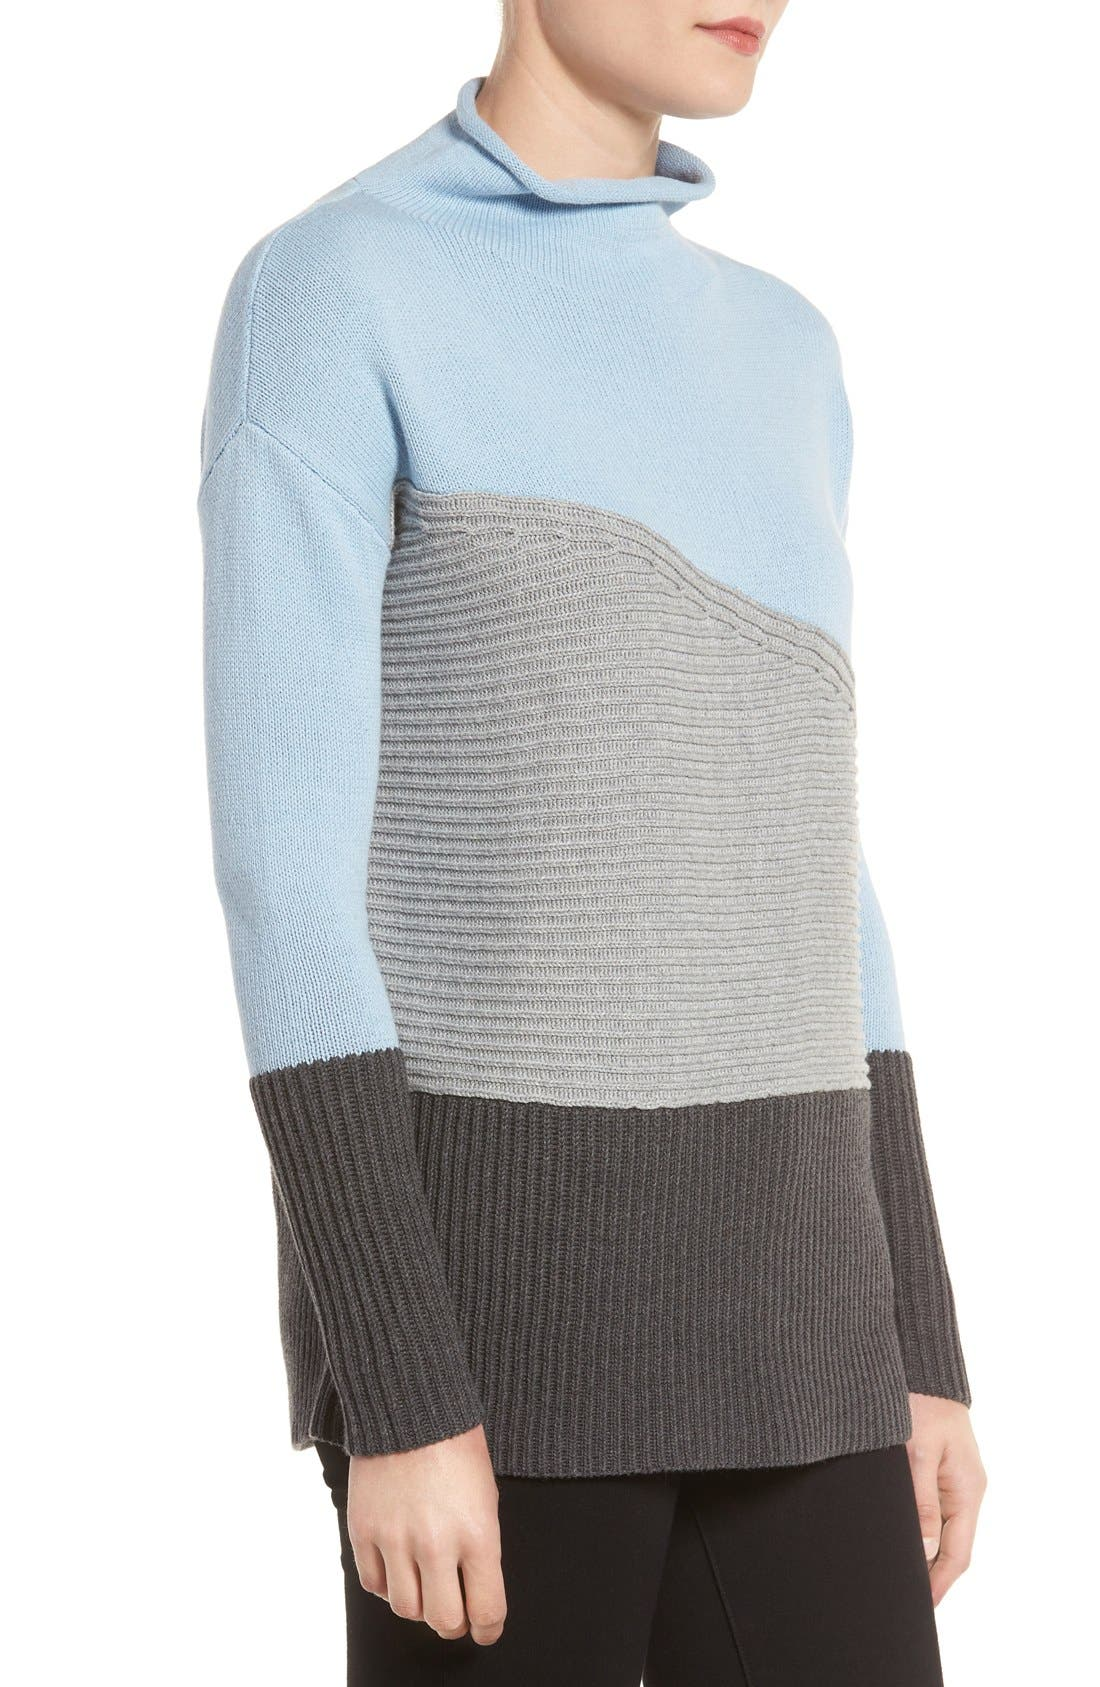 Alternate Image 3  - Vince Camuto Colorblock Turtleneck Sweater (Regular & Petite)